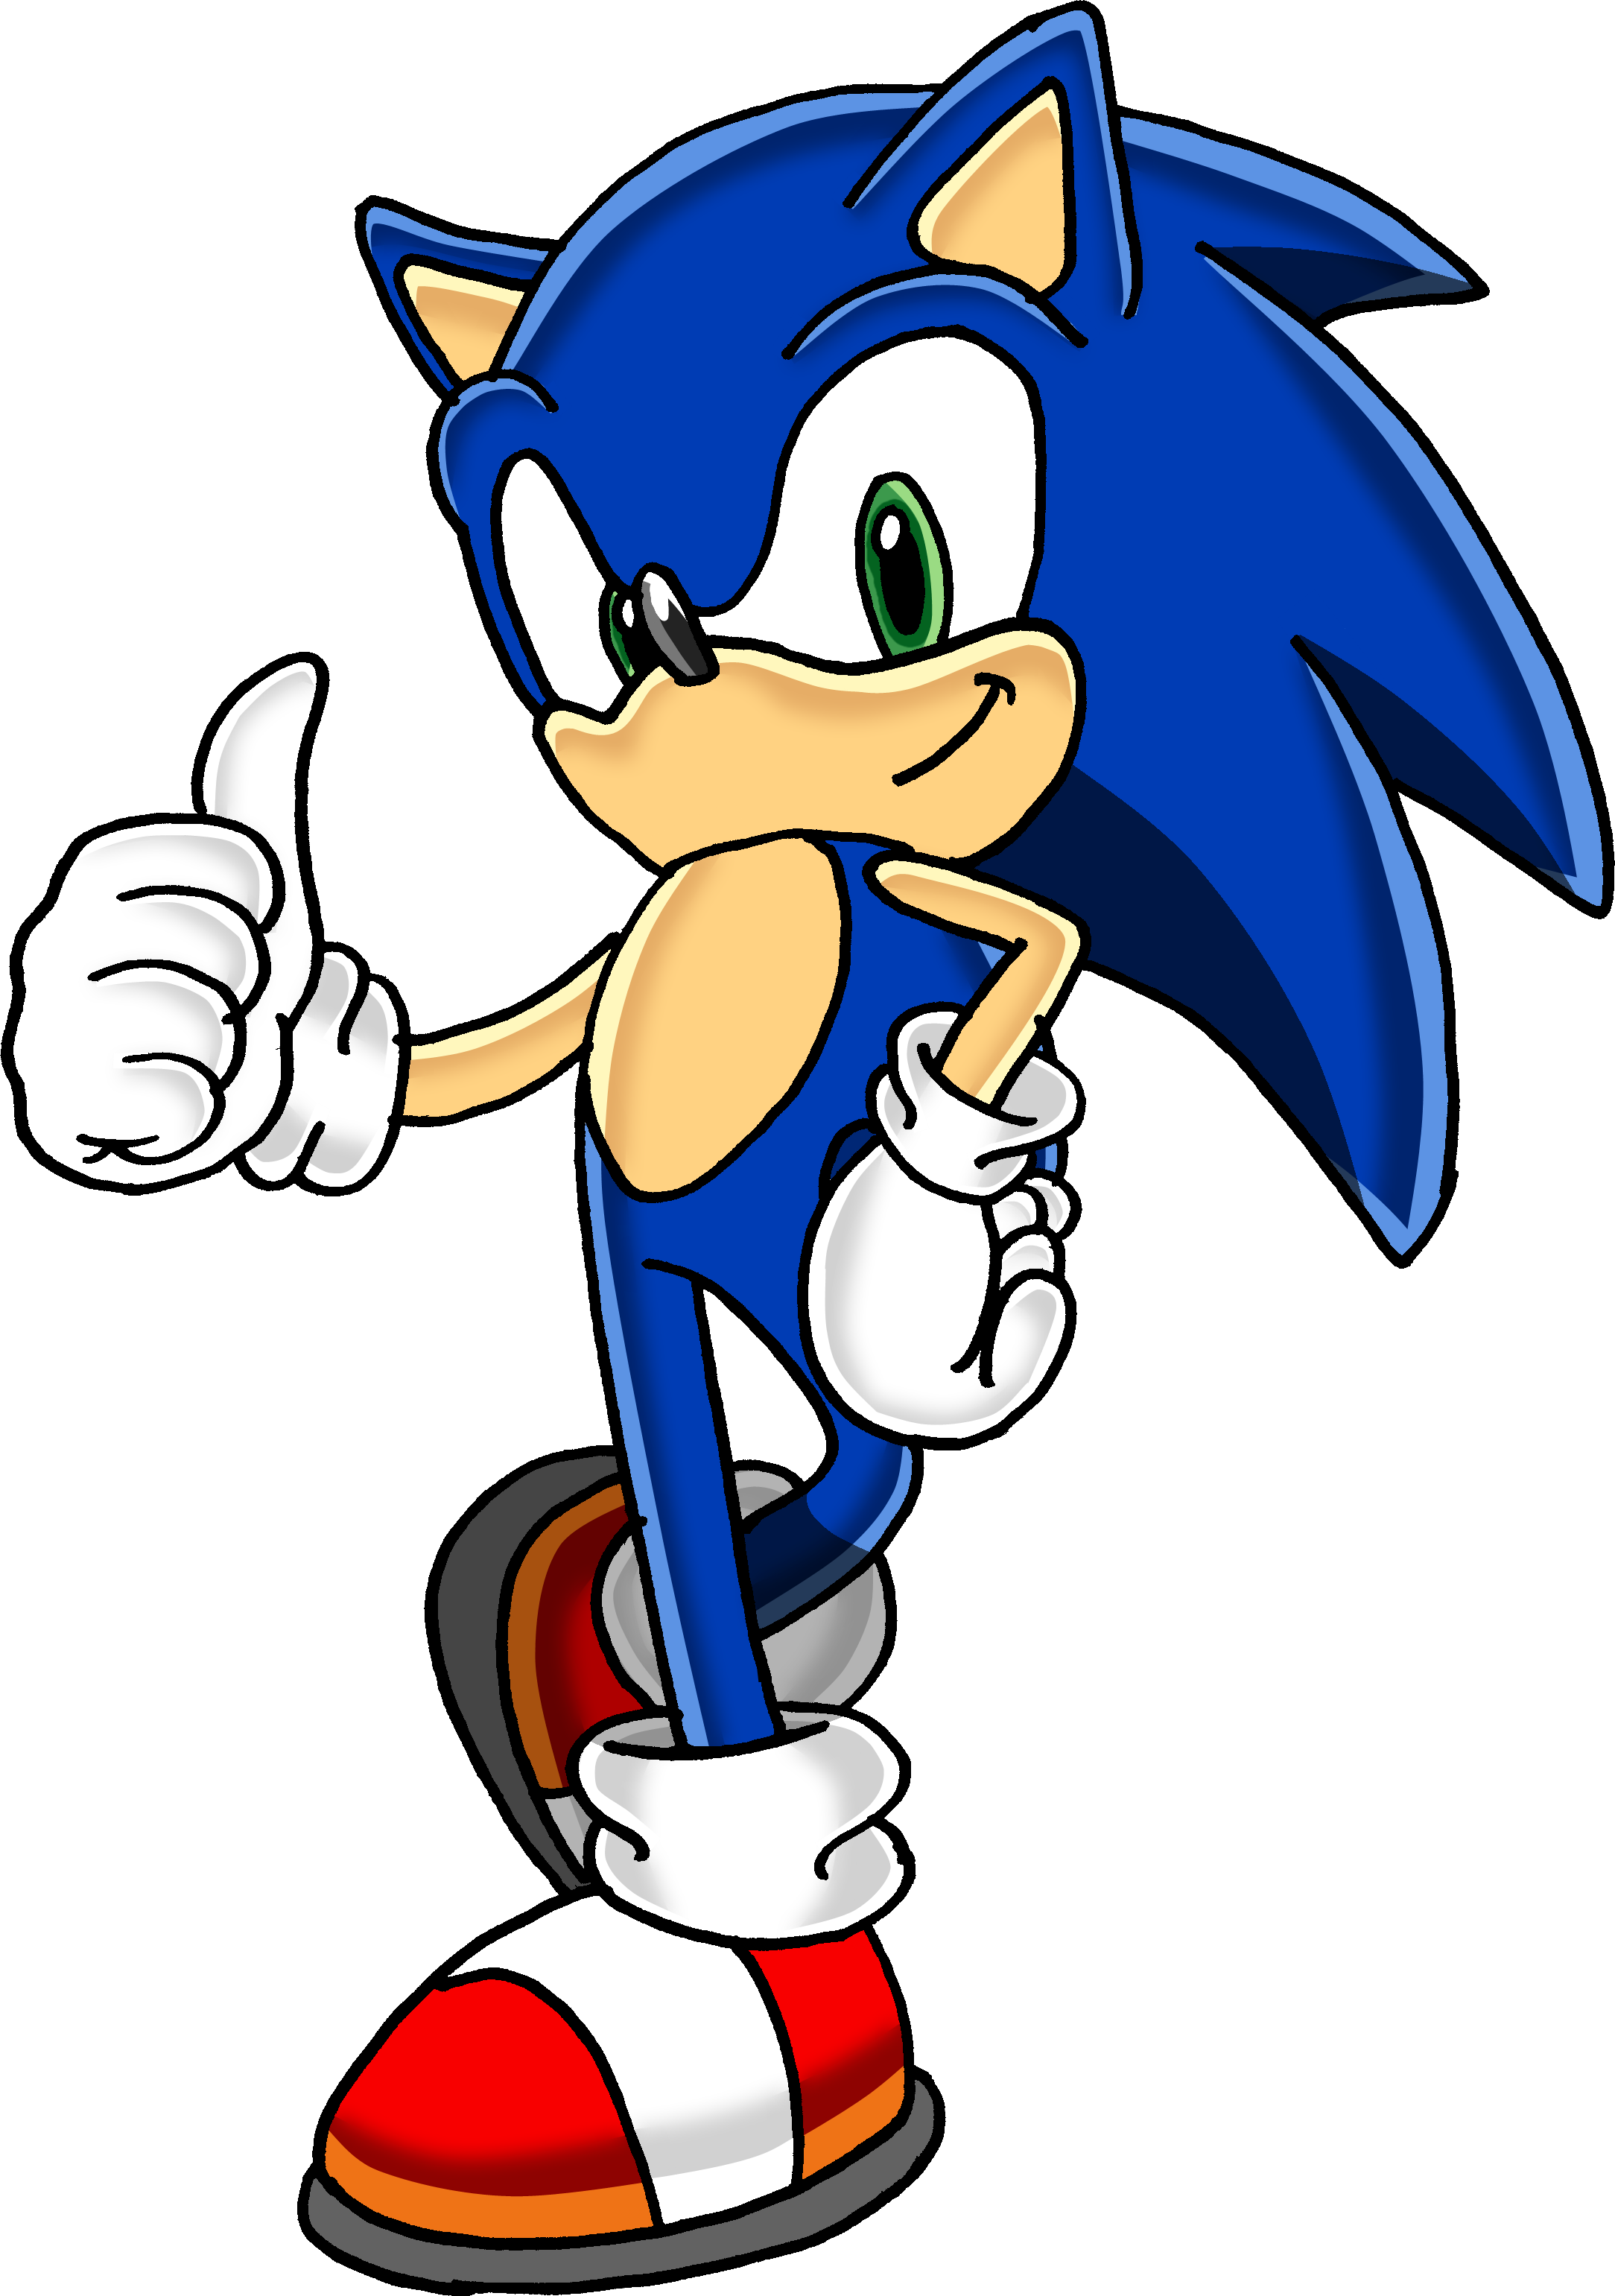 Thumb Image - Sonic Png , HD Wallpaper & Backgrounds